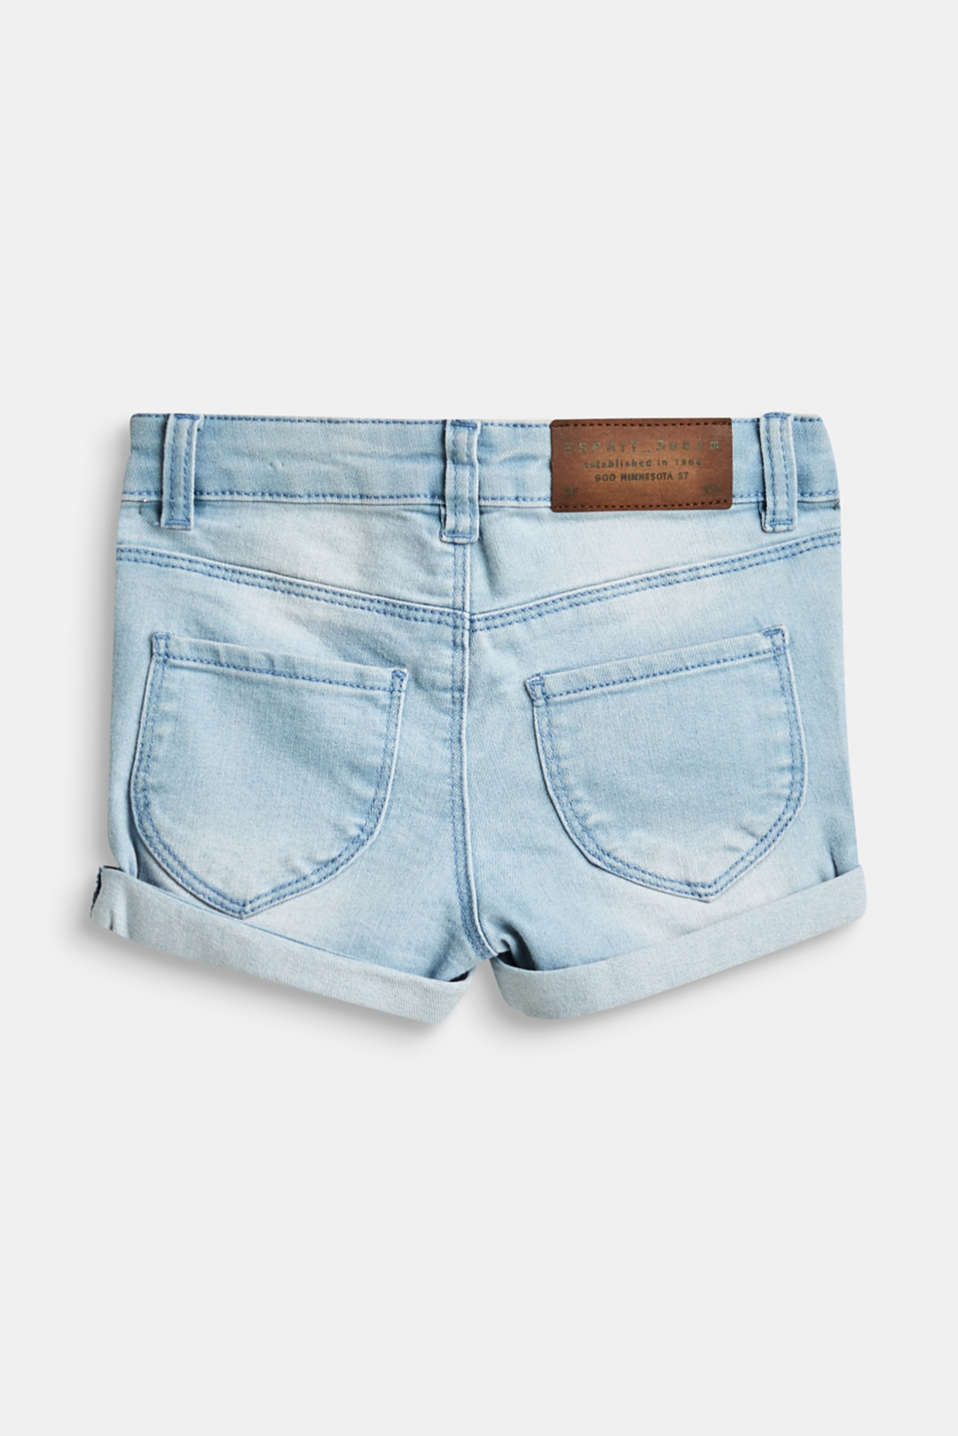 Stretch-Jeans-Shorts mit Washed-Effekten